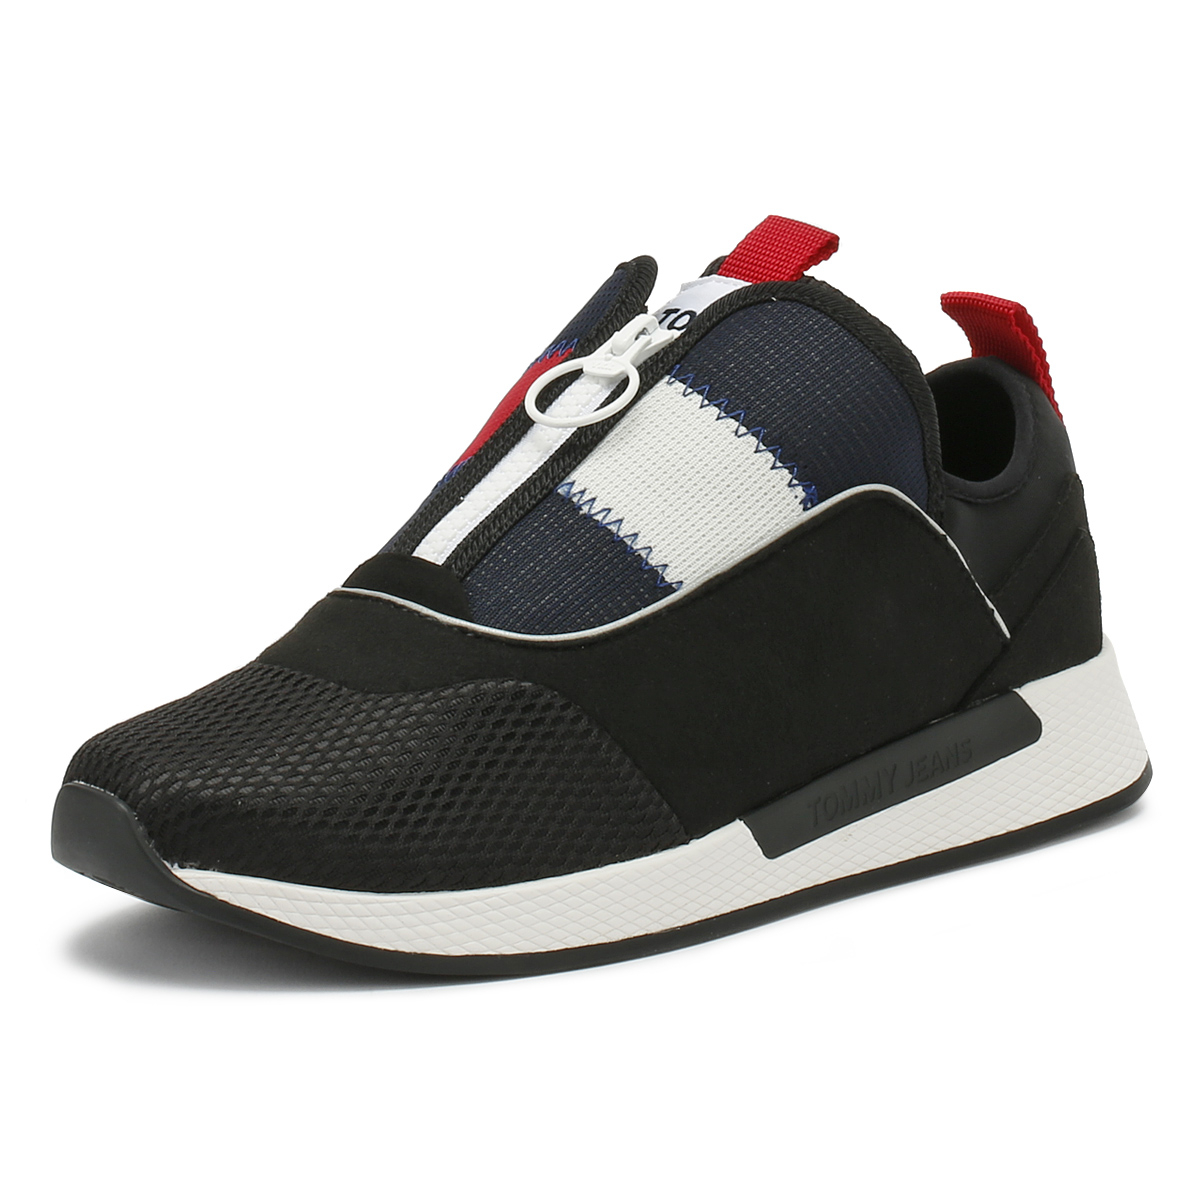 8cfd7287317 Details about Tommy Hilfiger Mens Trainers Black Icon Sport Flexi Sport  Casual Shoes